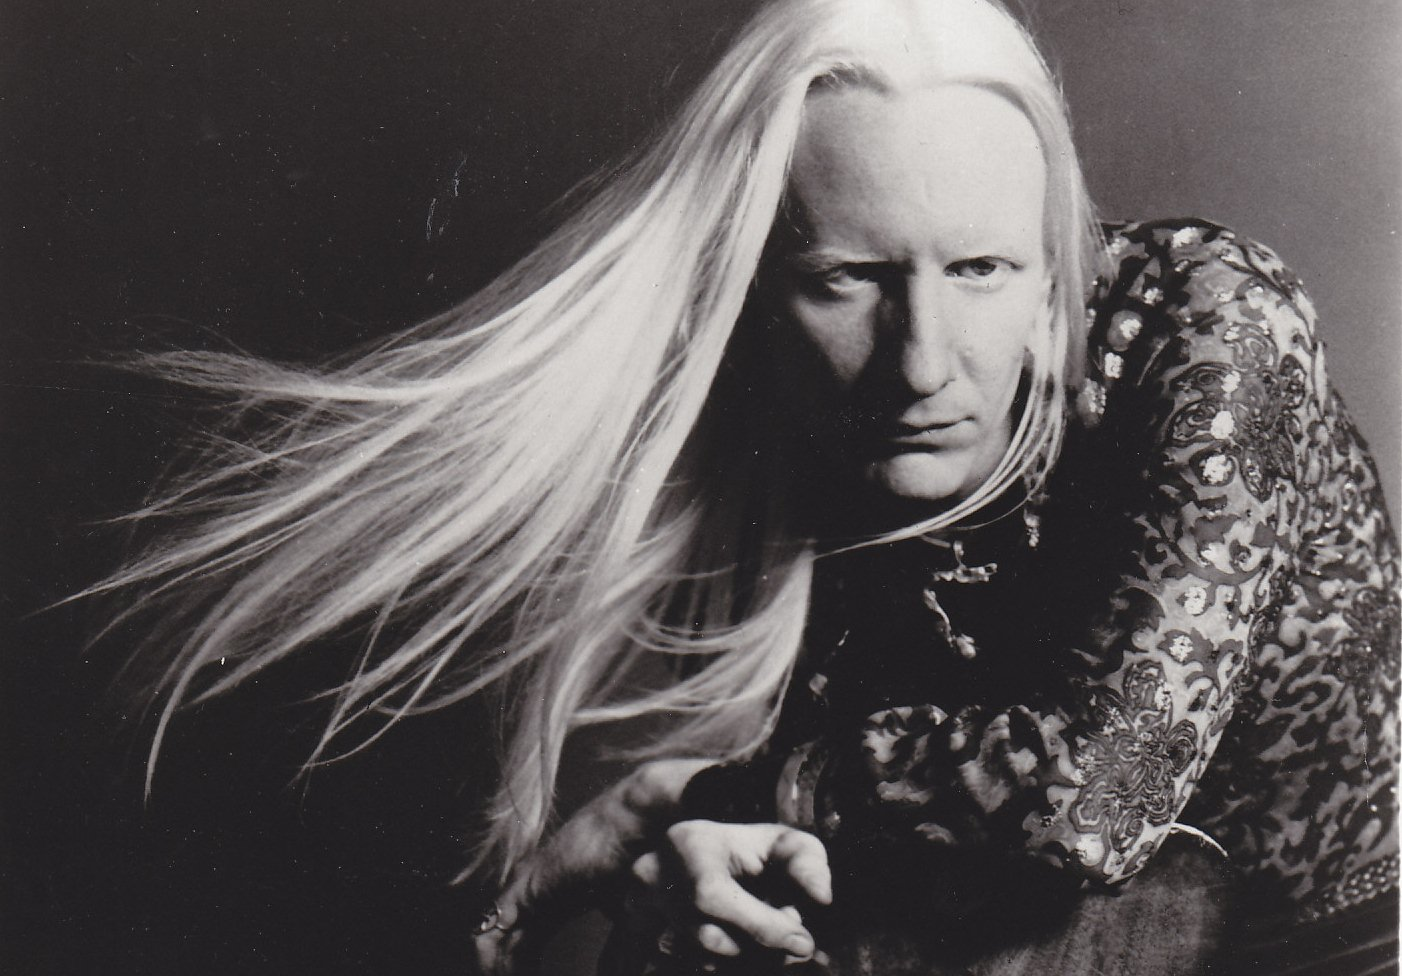 Johnny Winter Artist HD Wallpaper 1402×976 Wallpaper